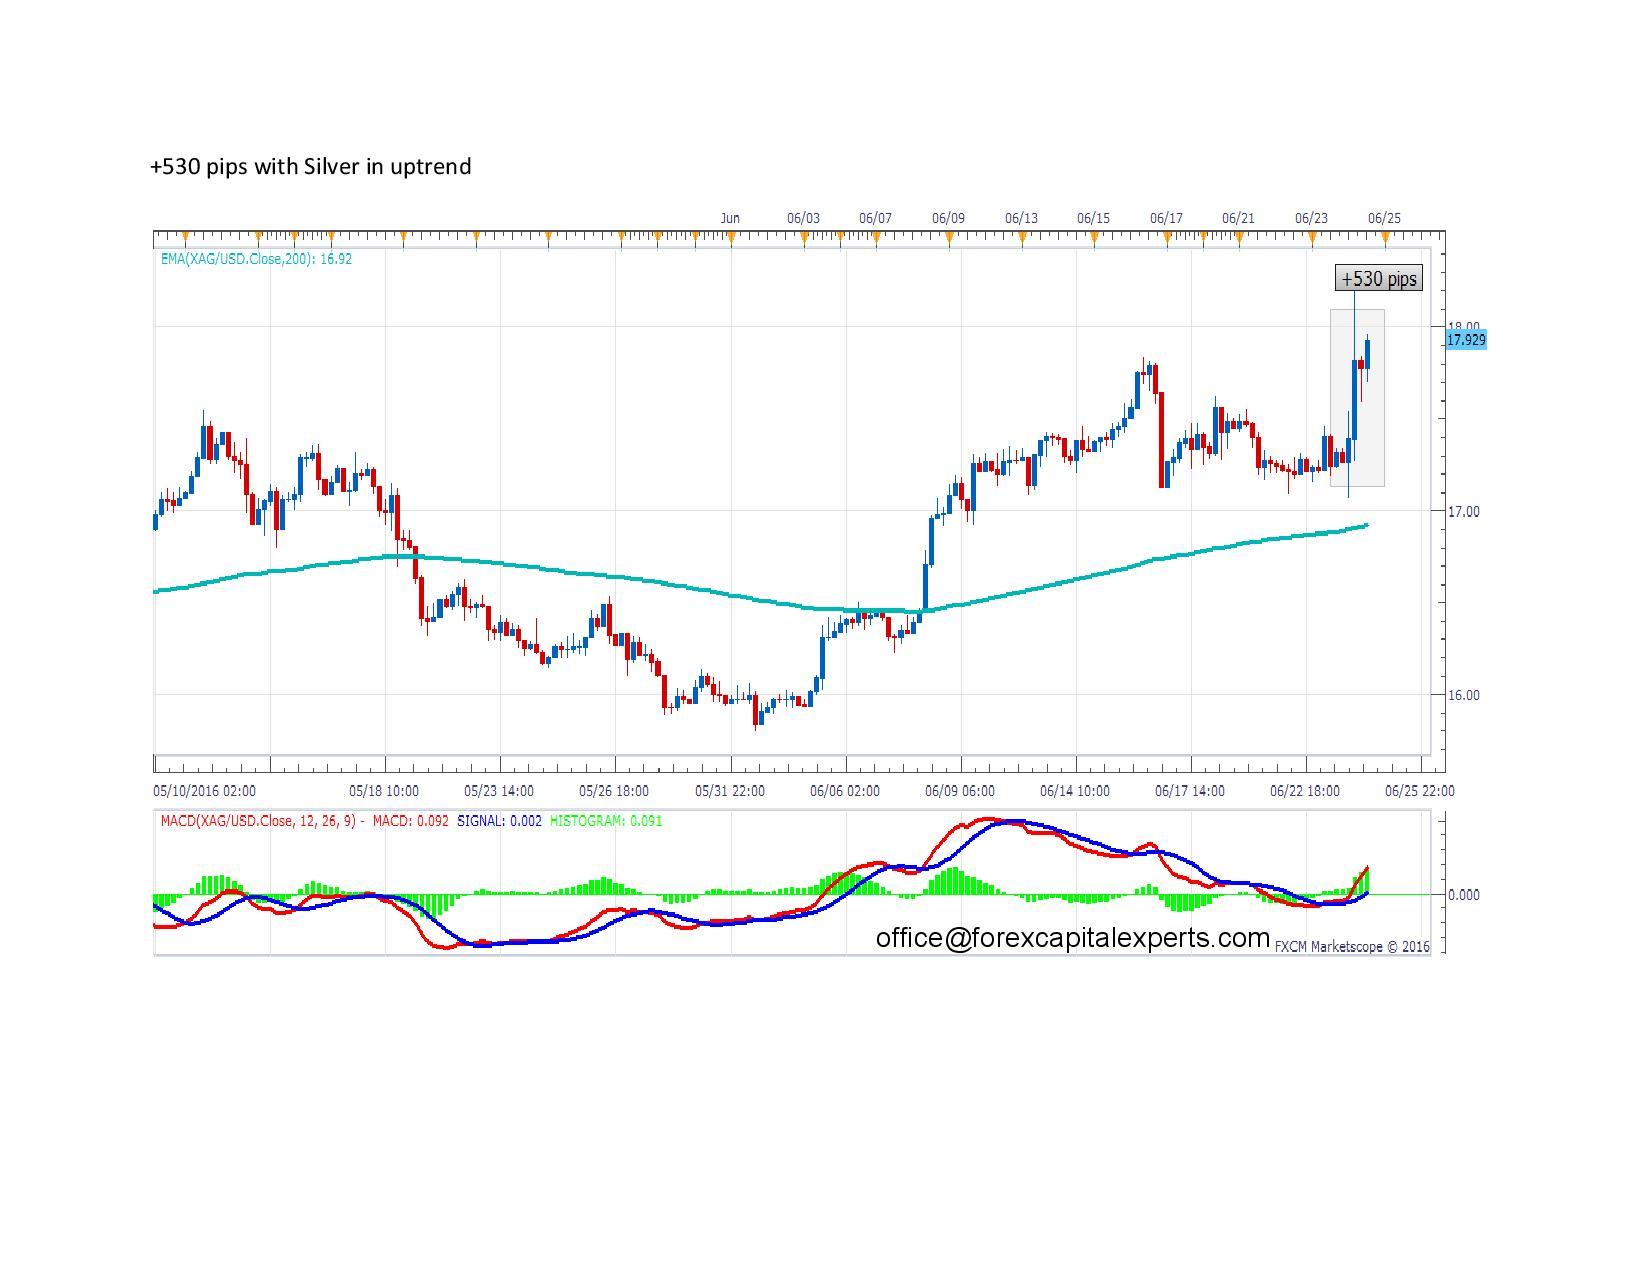 530 pips with Silver in uptrend page 001